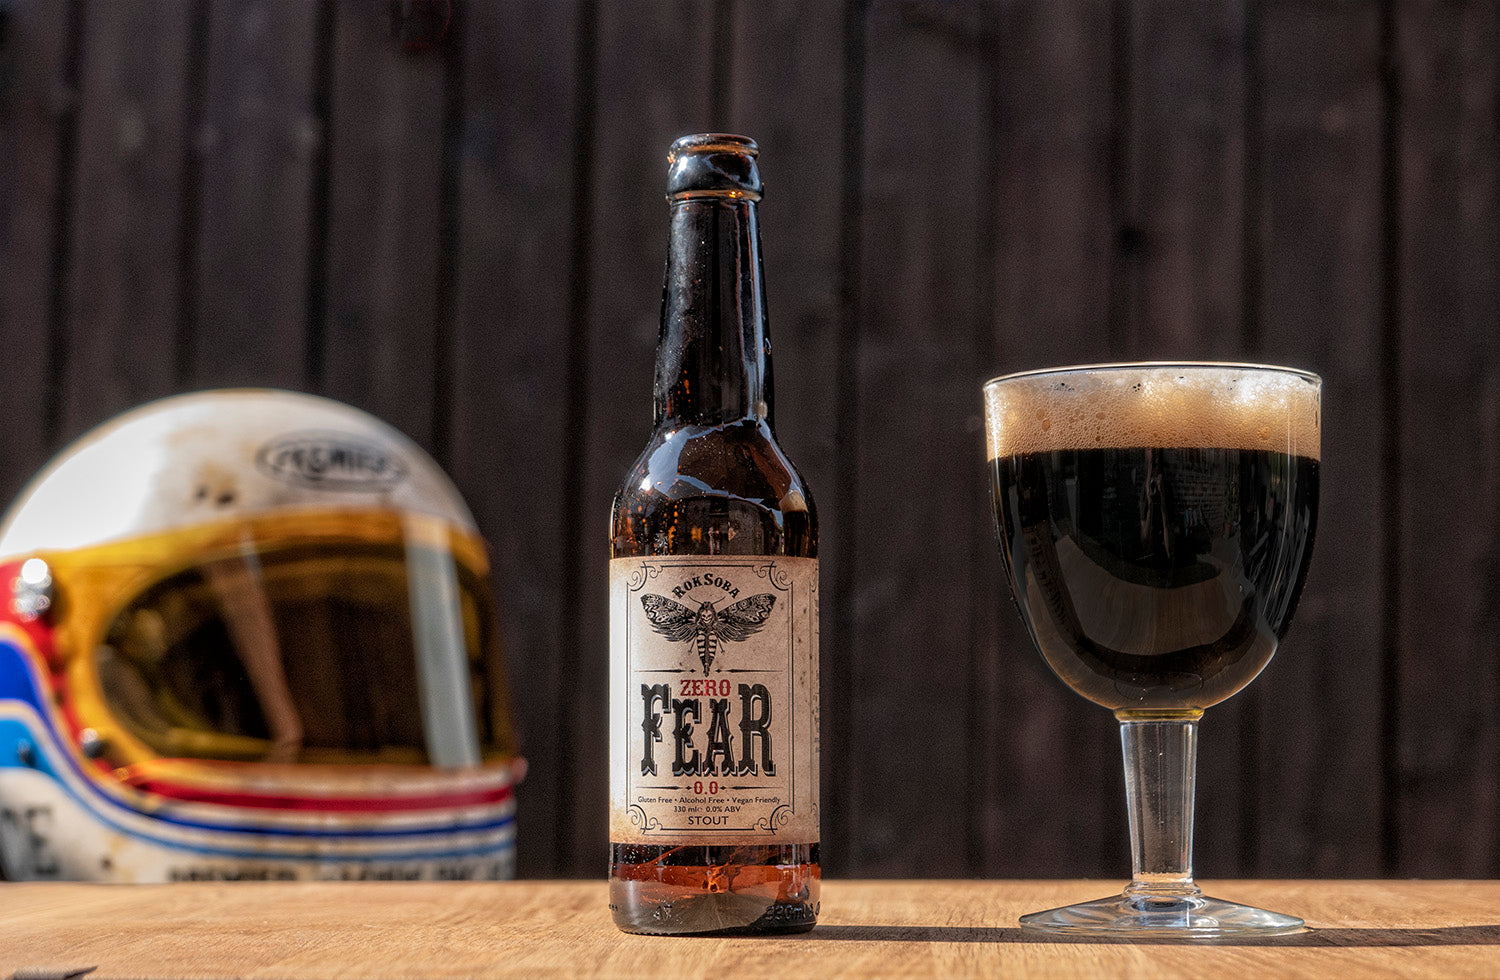 Rok Soba's 'Zero FEAR' 0.0% ABV Stout (Photo © Soberito)